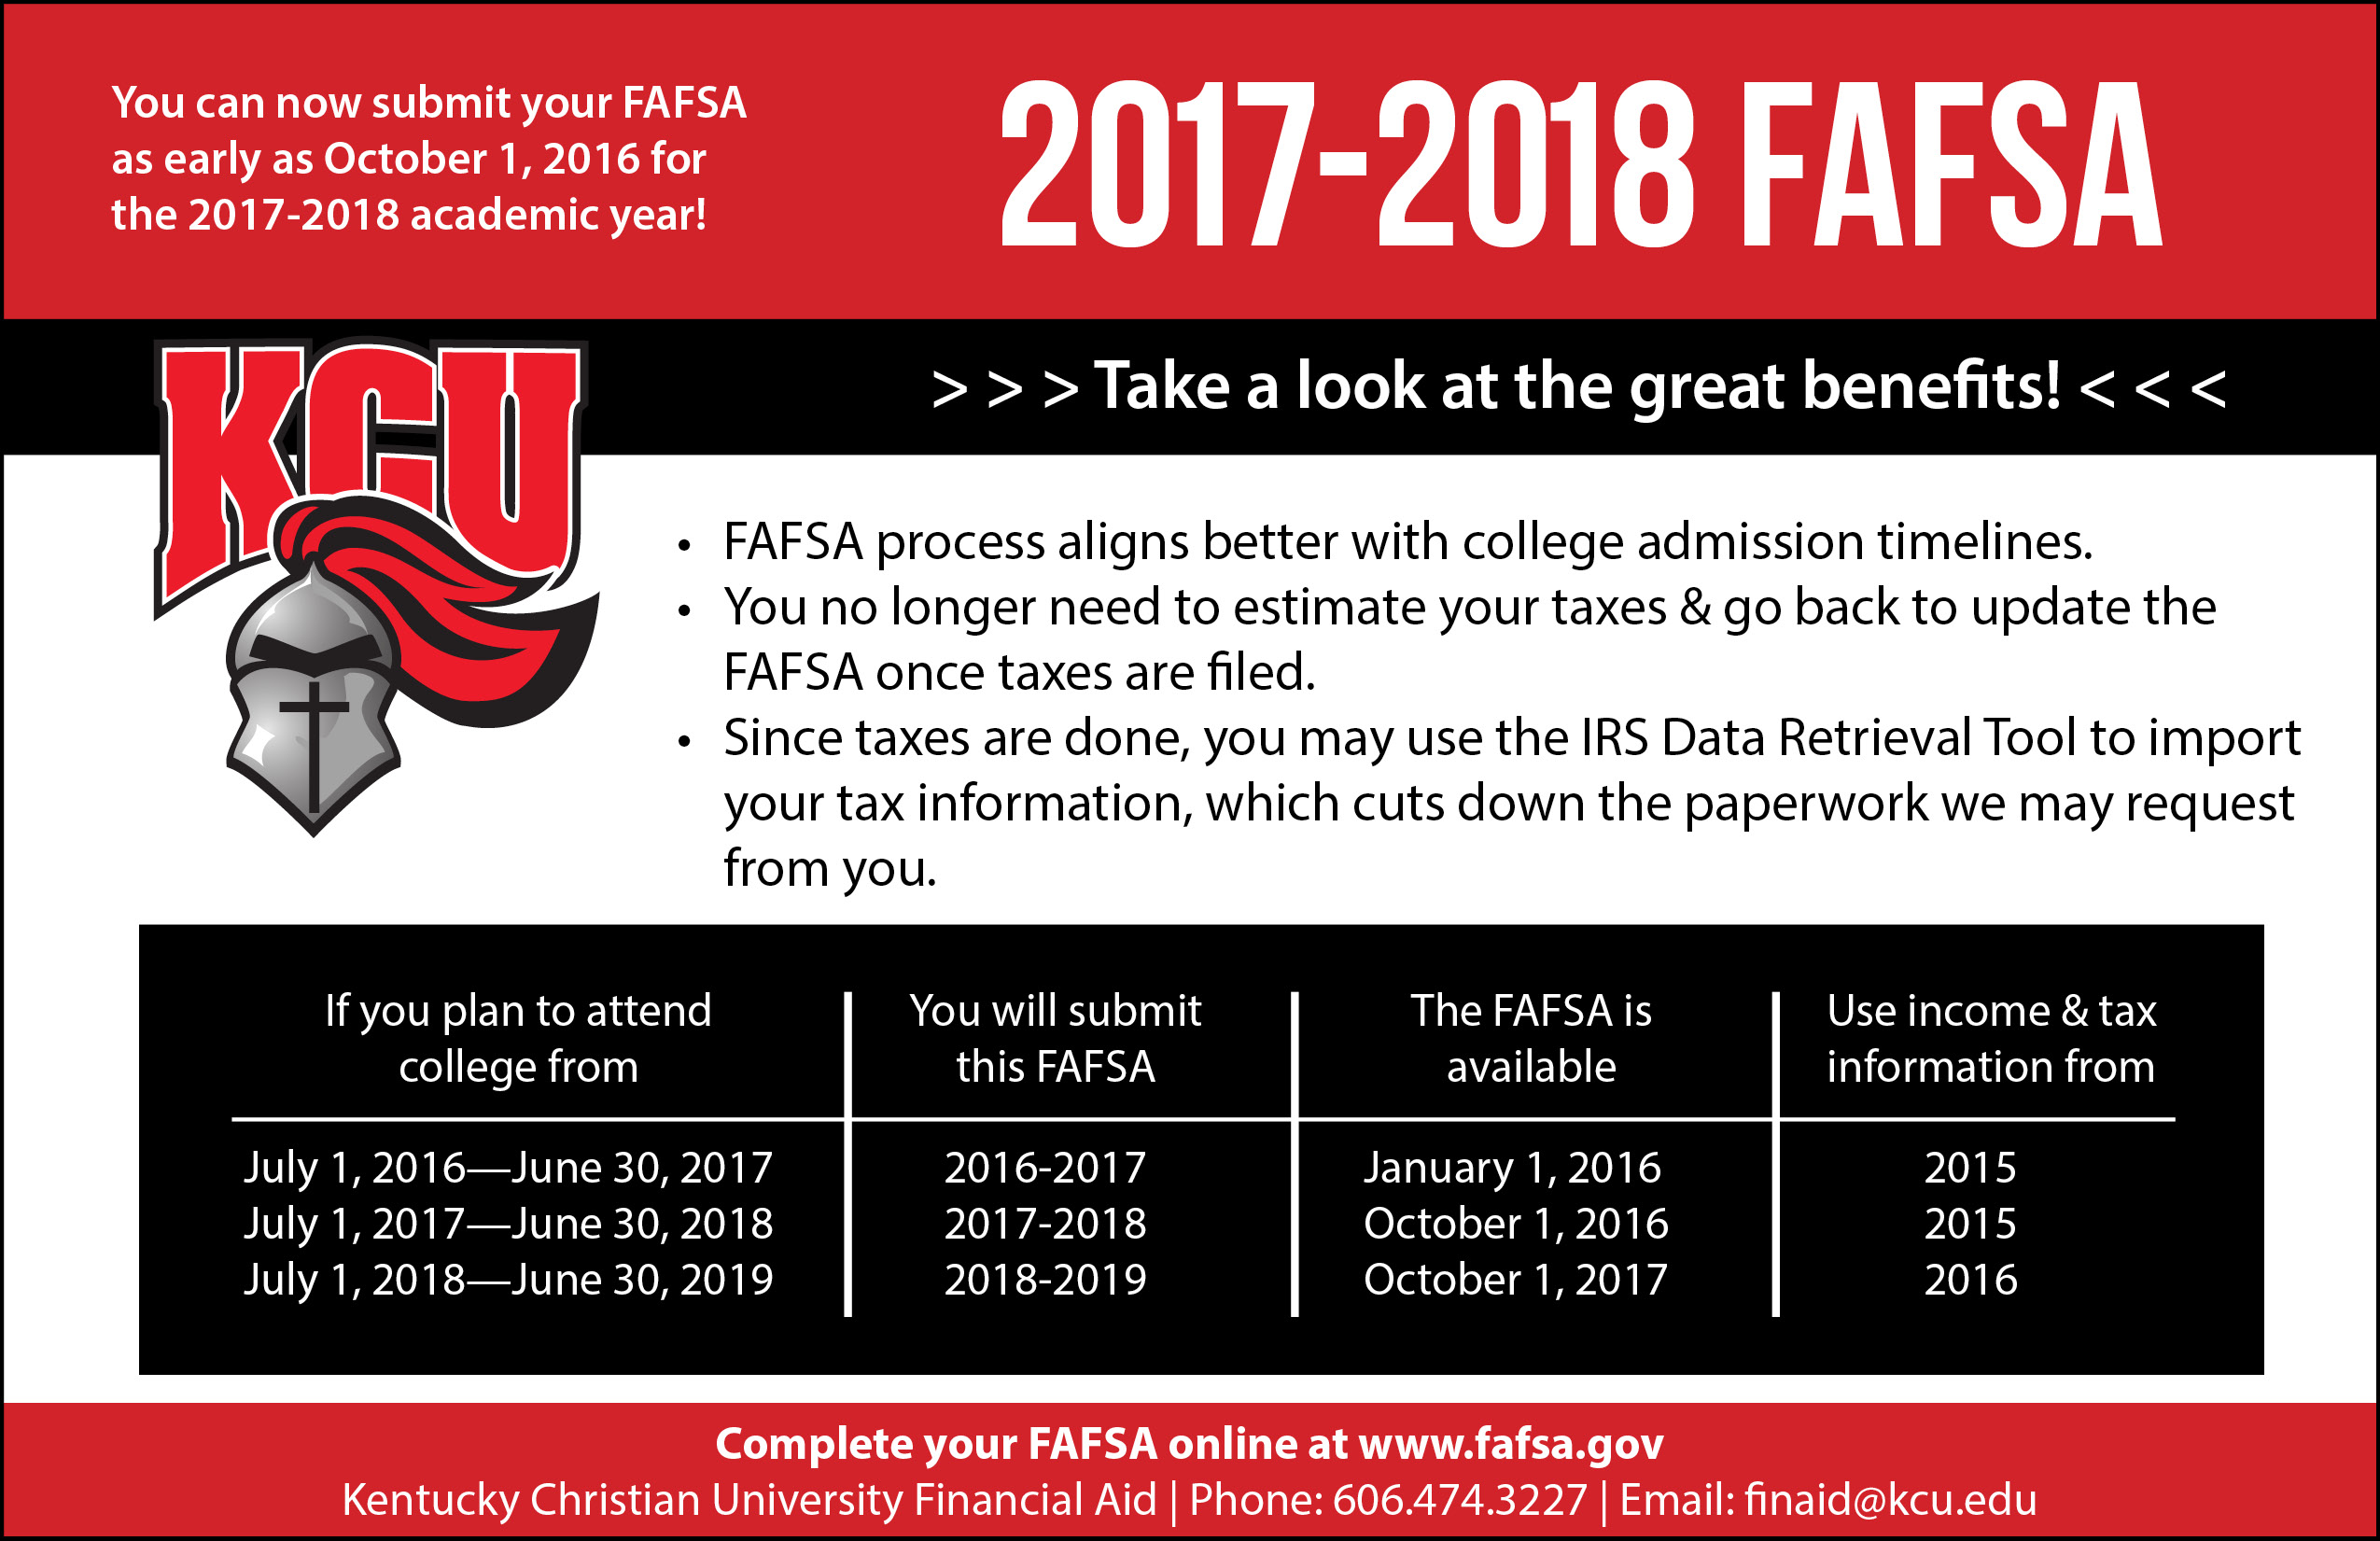 FAFSA Worksheet | Kentucky Christian University